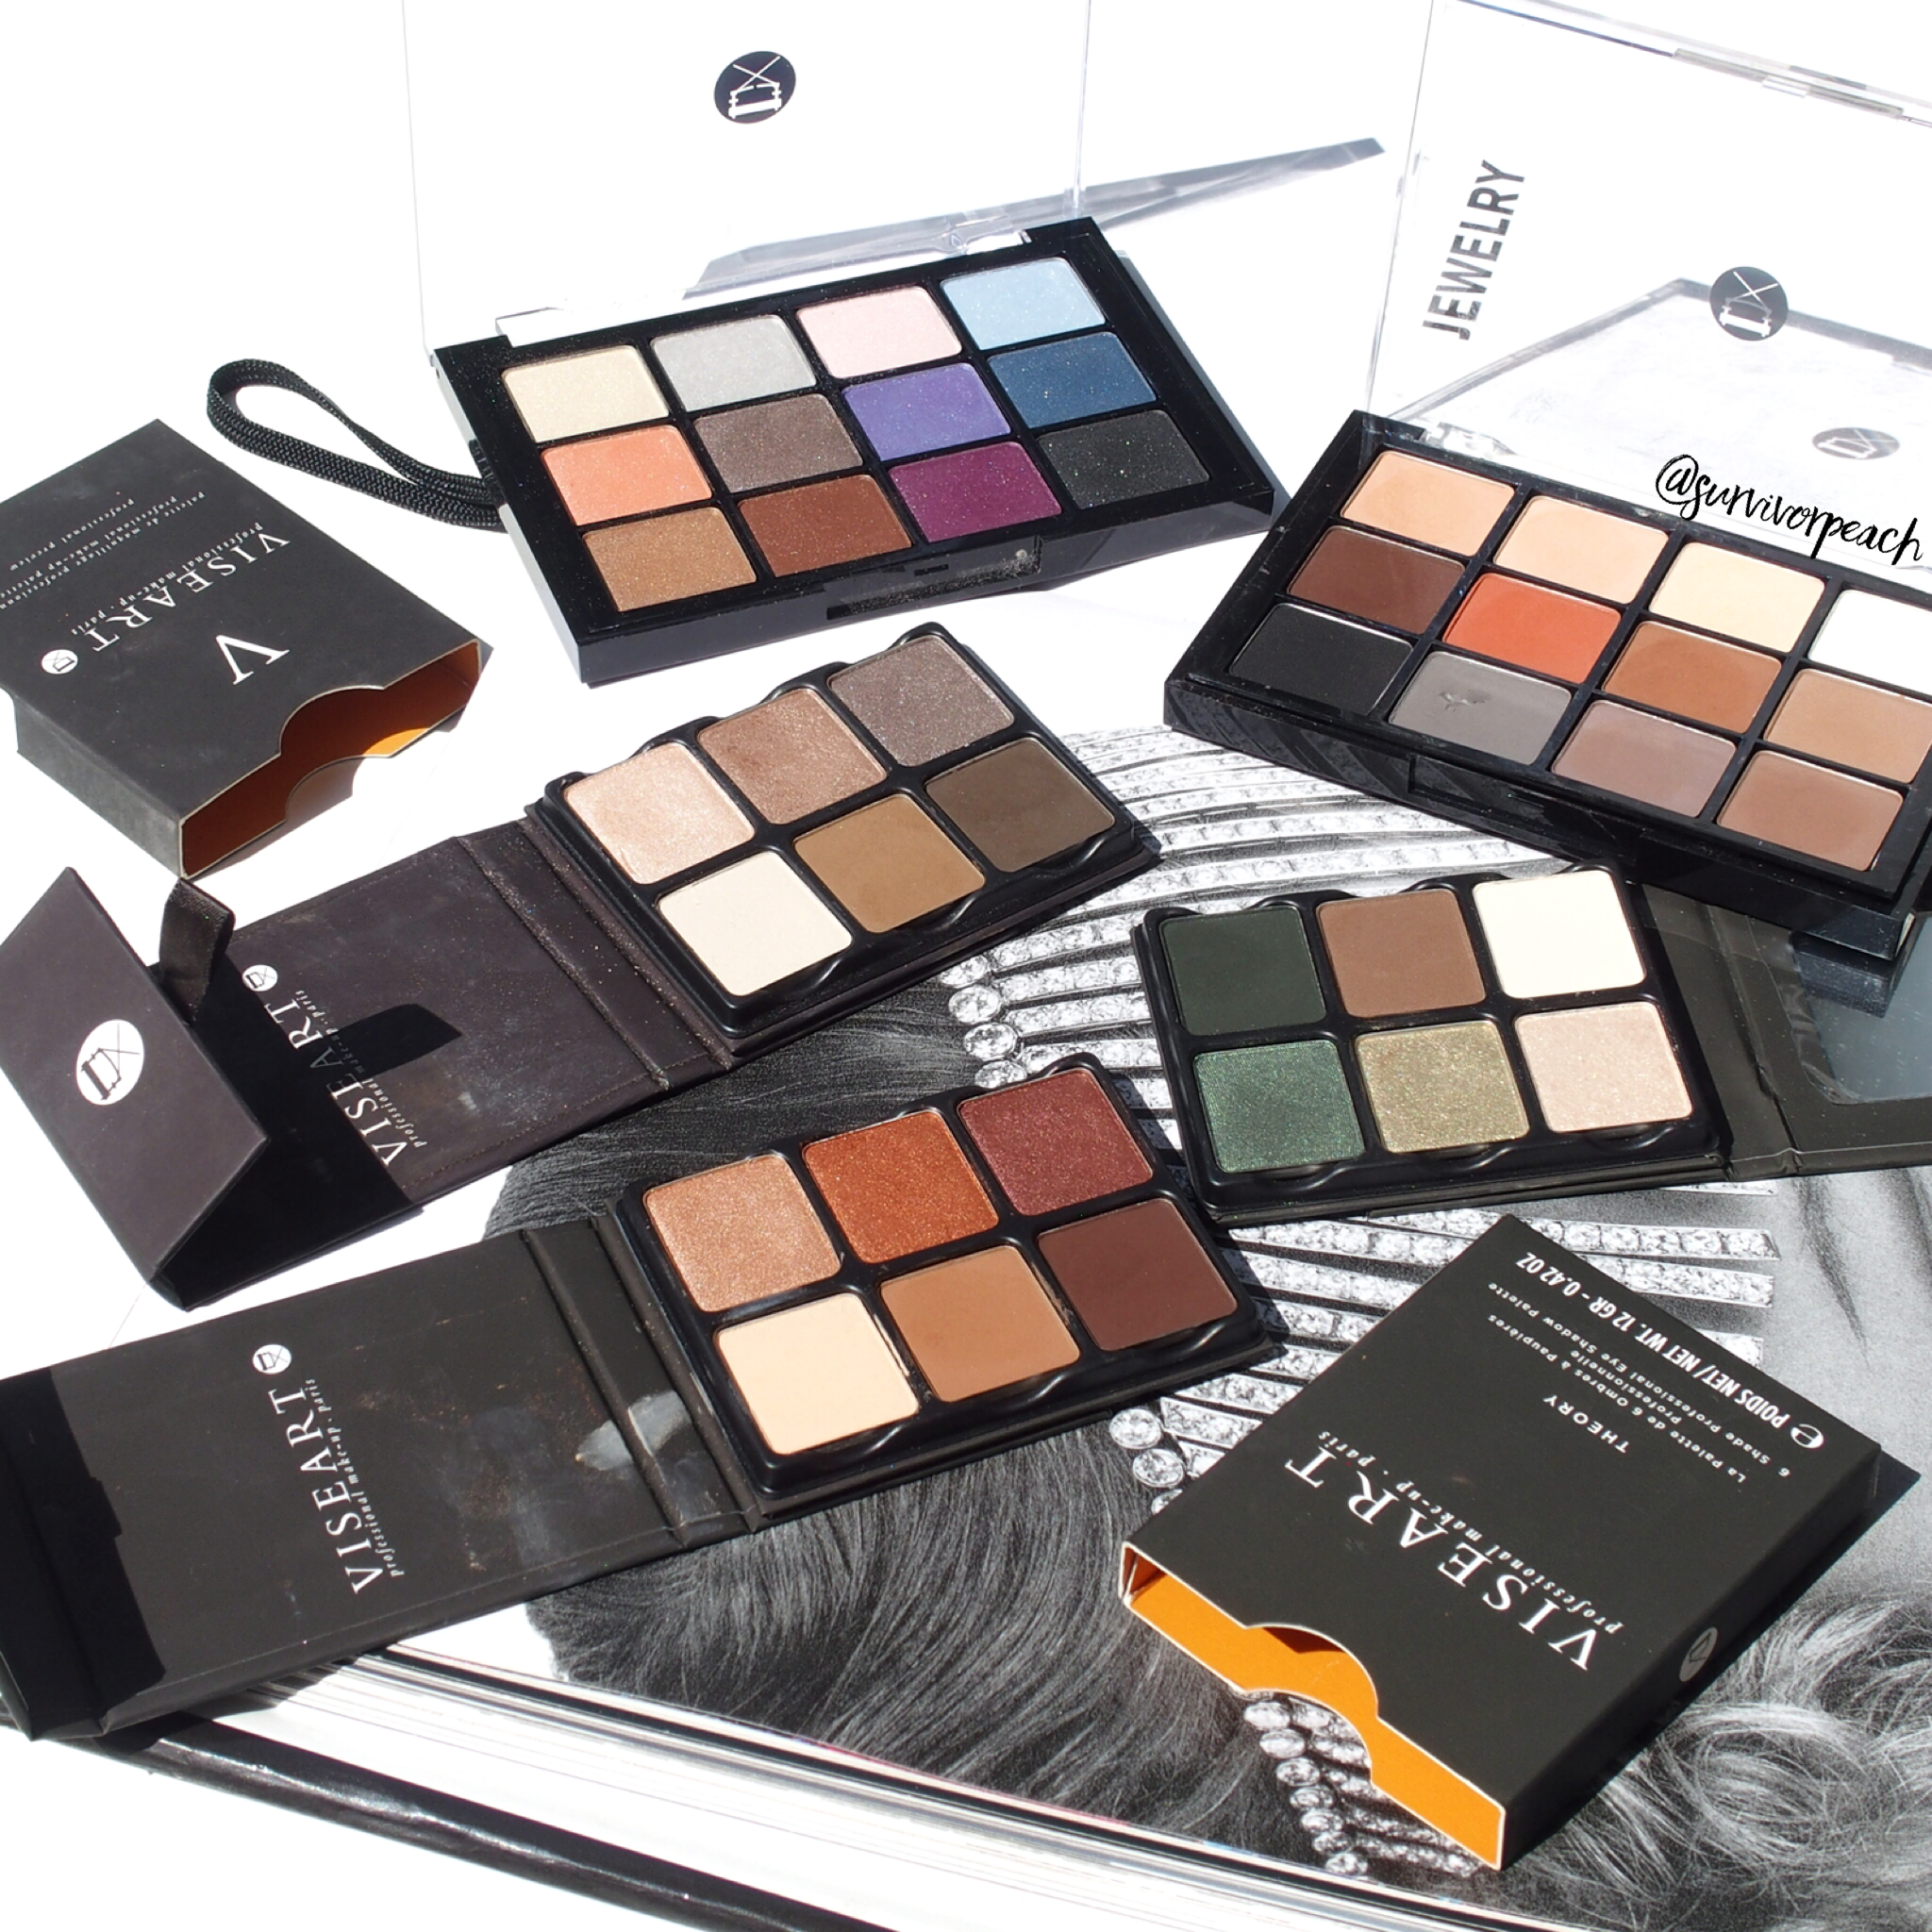 Viseart Theory palettes, Bridal Satin, Natural Matte